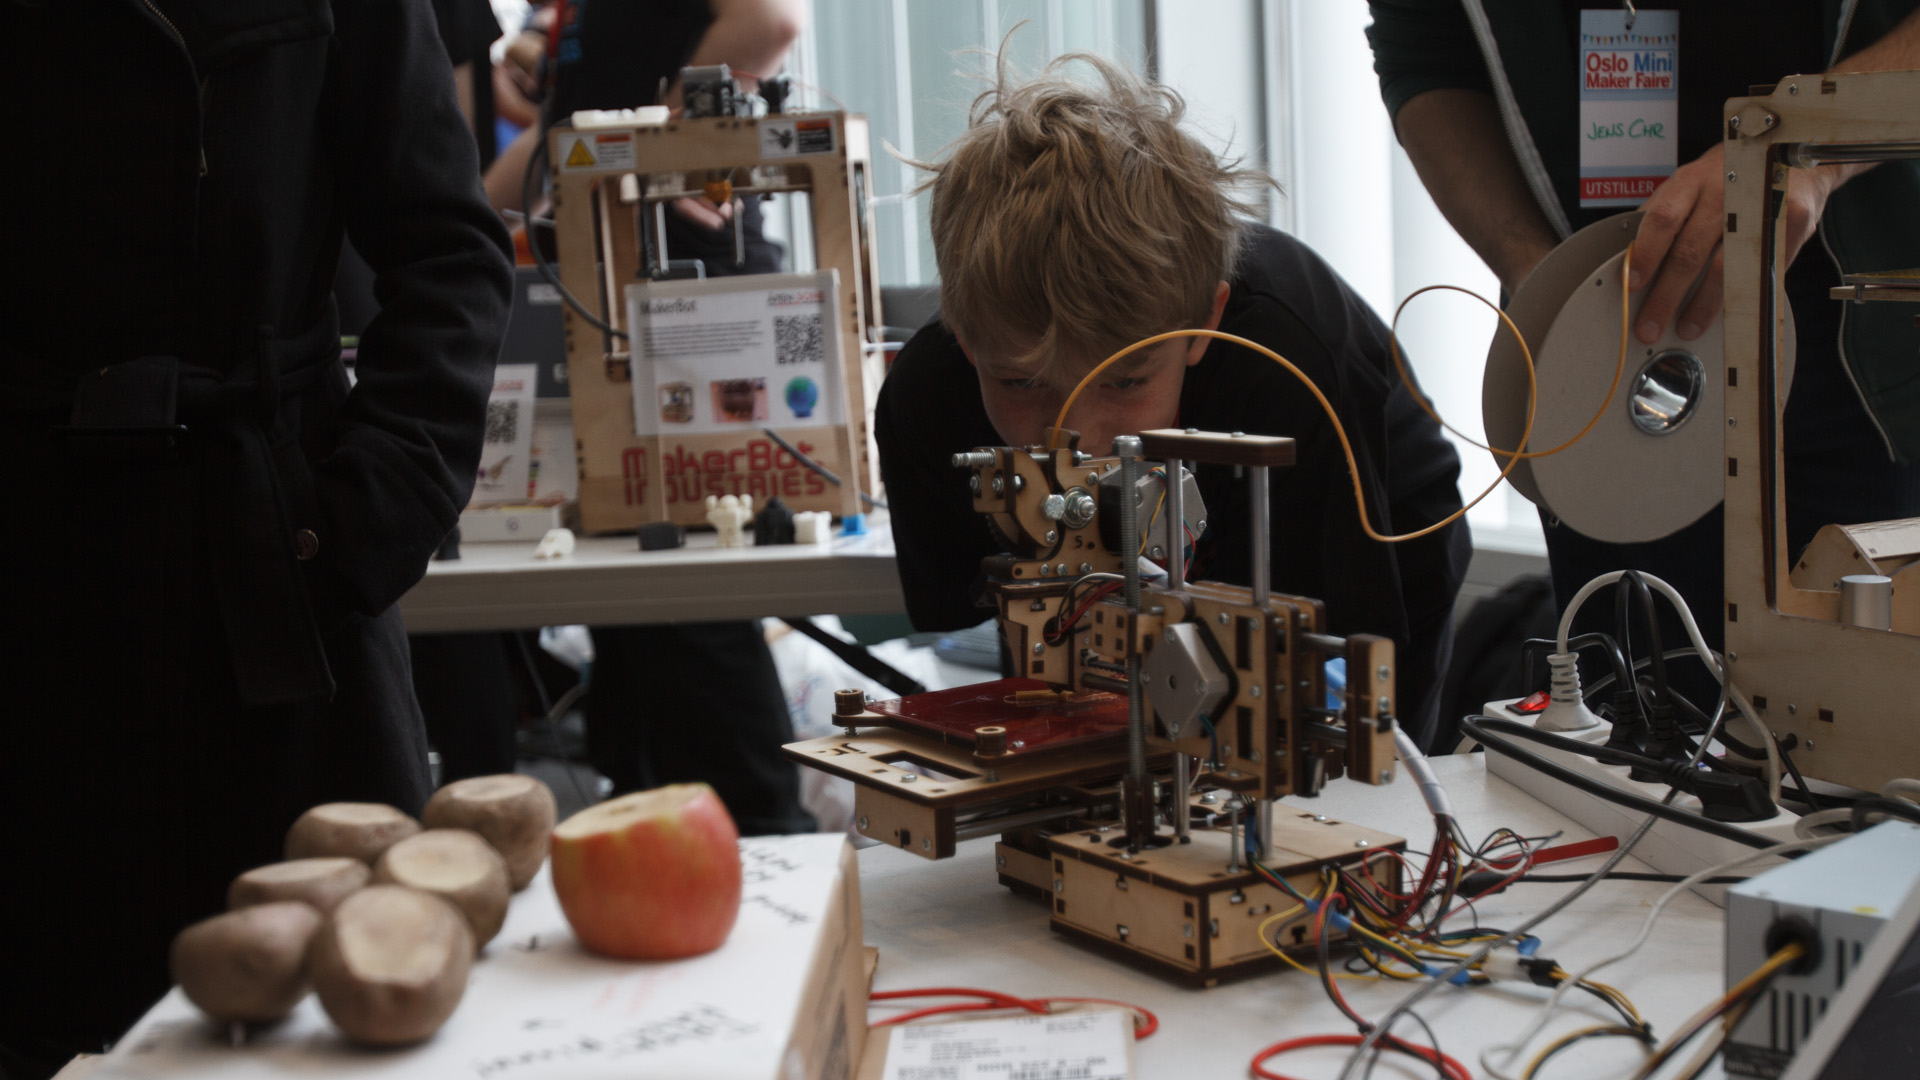 Article image for Maker Faire Oslo